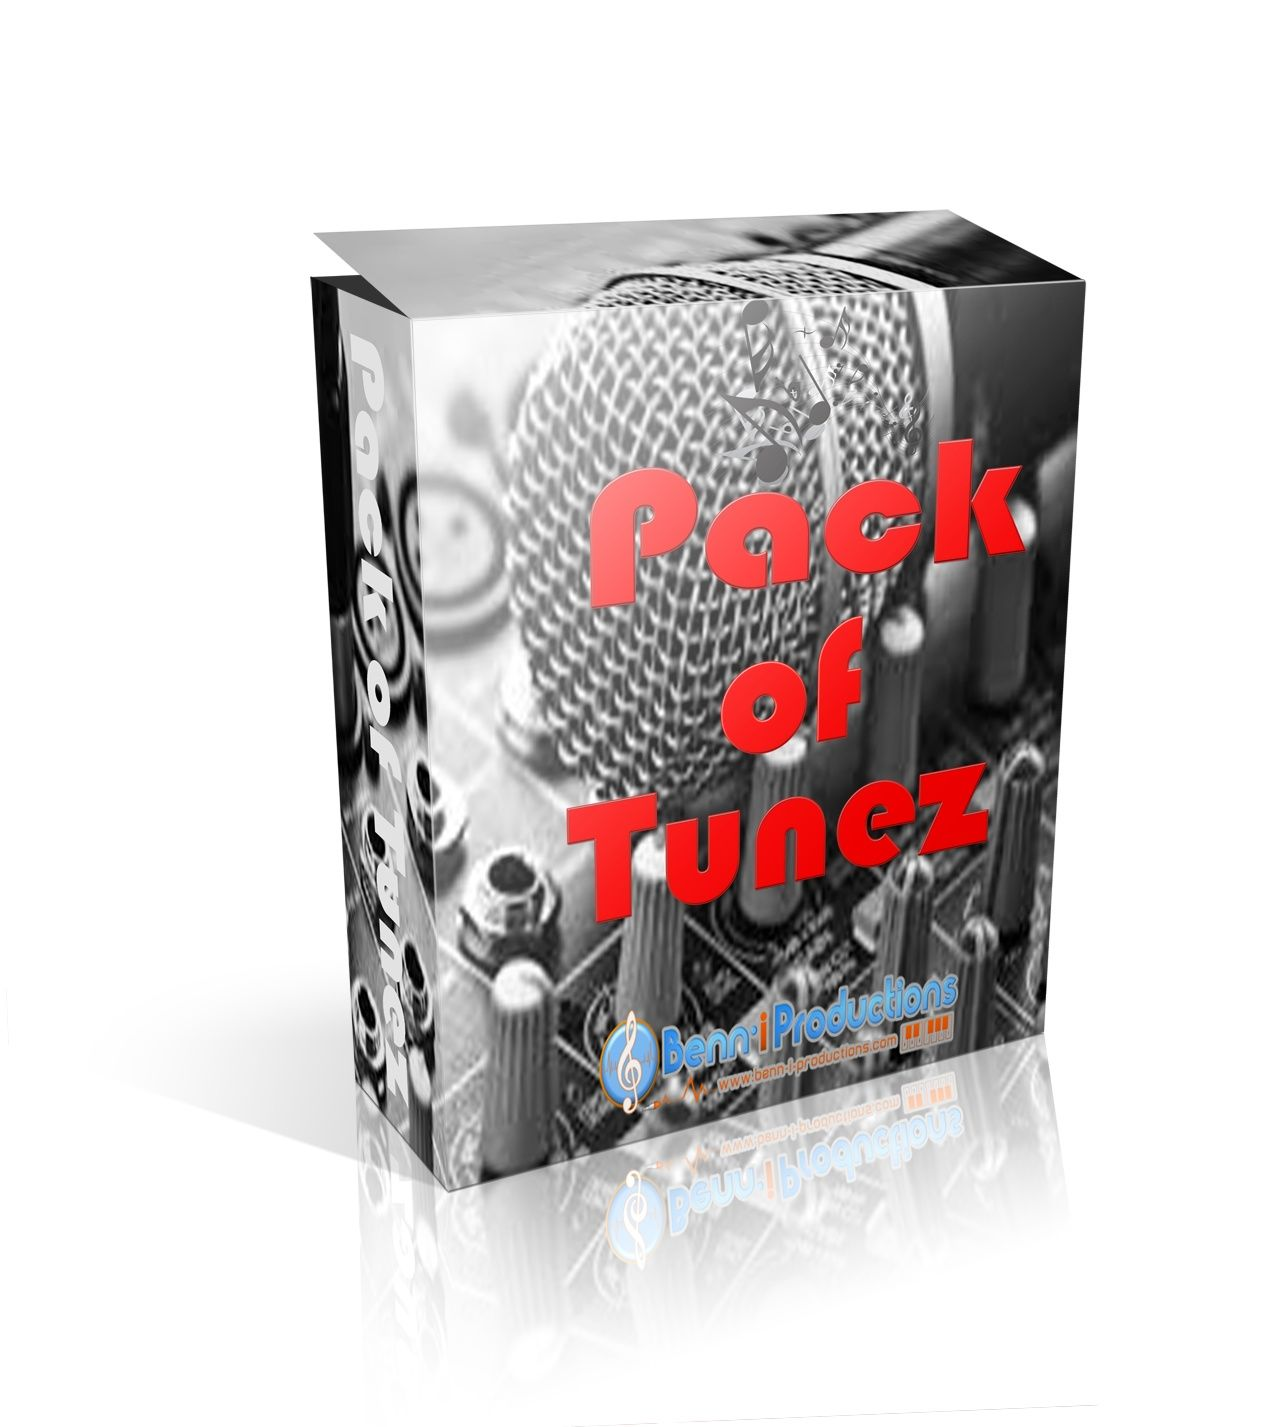 Benni Presents Pack of Tunez Royalty Free audio samples